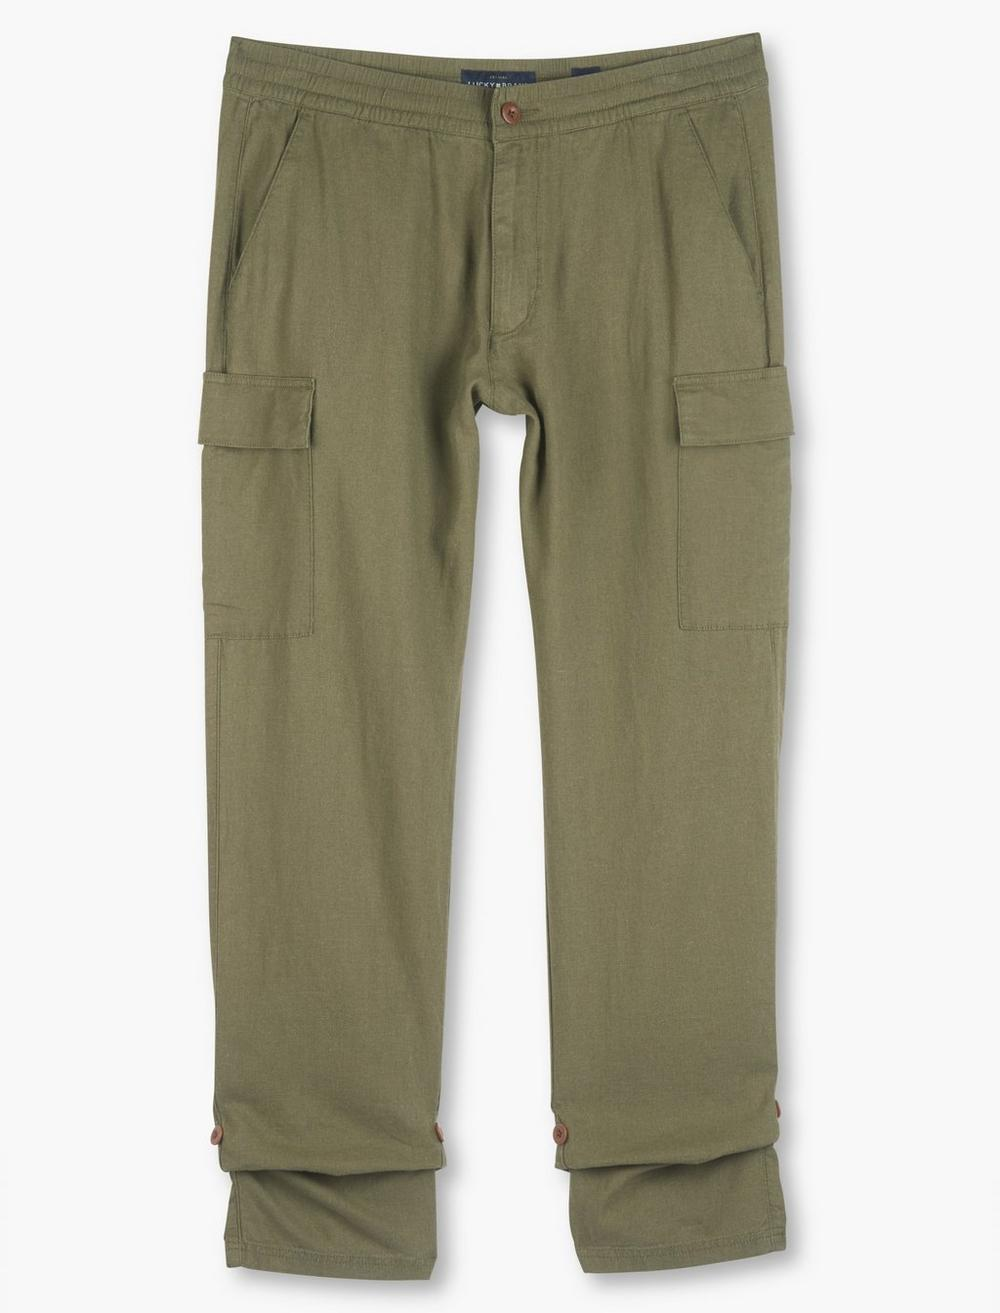 LINEN PULL UP CARGO PANT, image 1